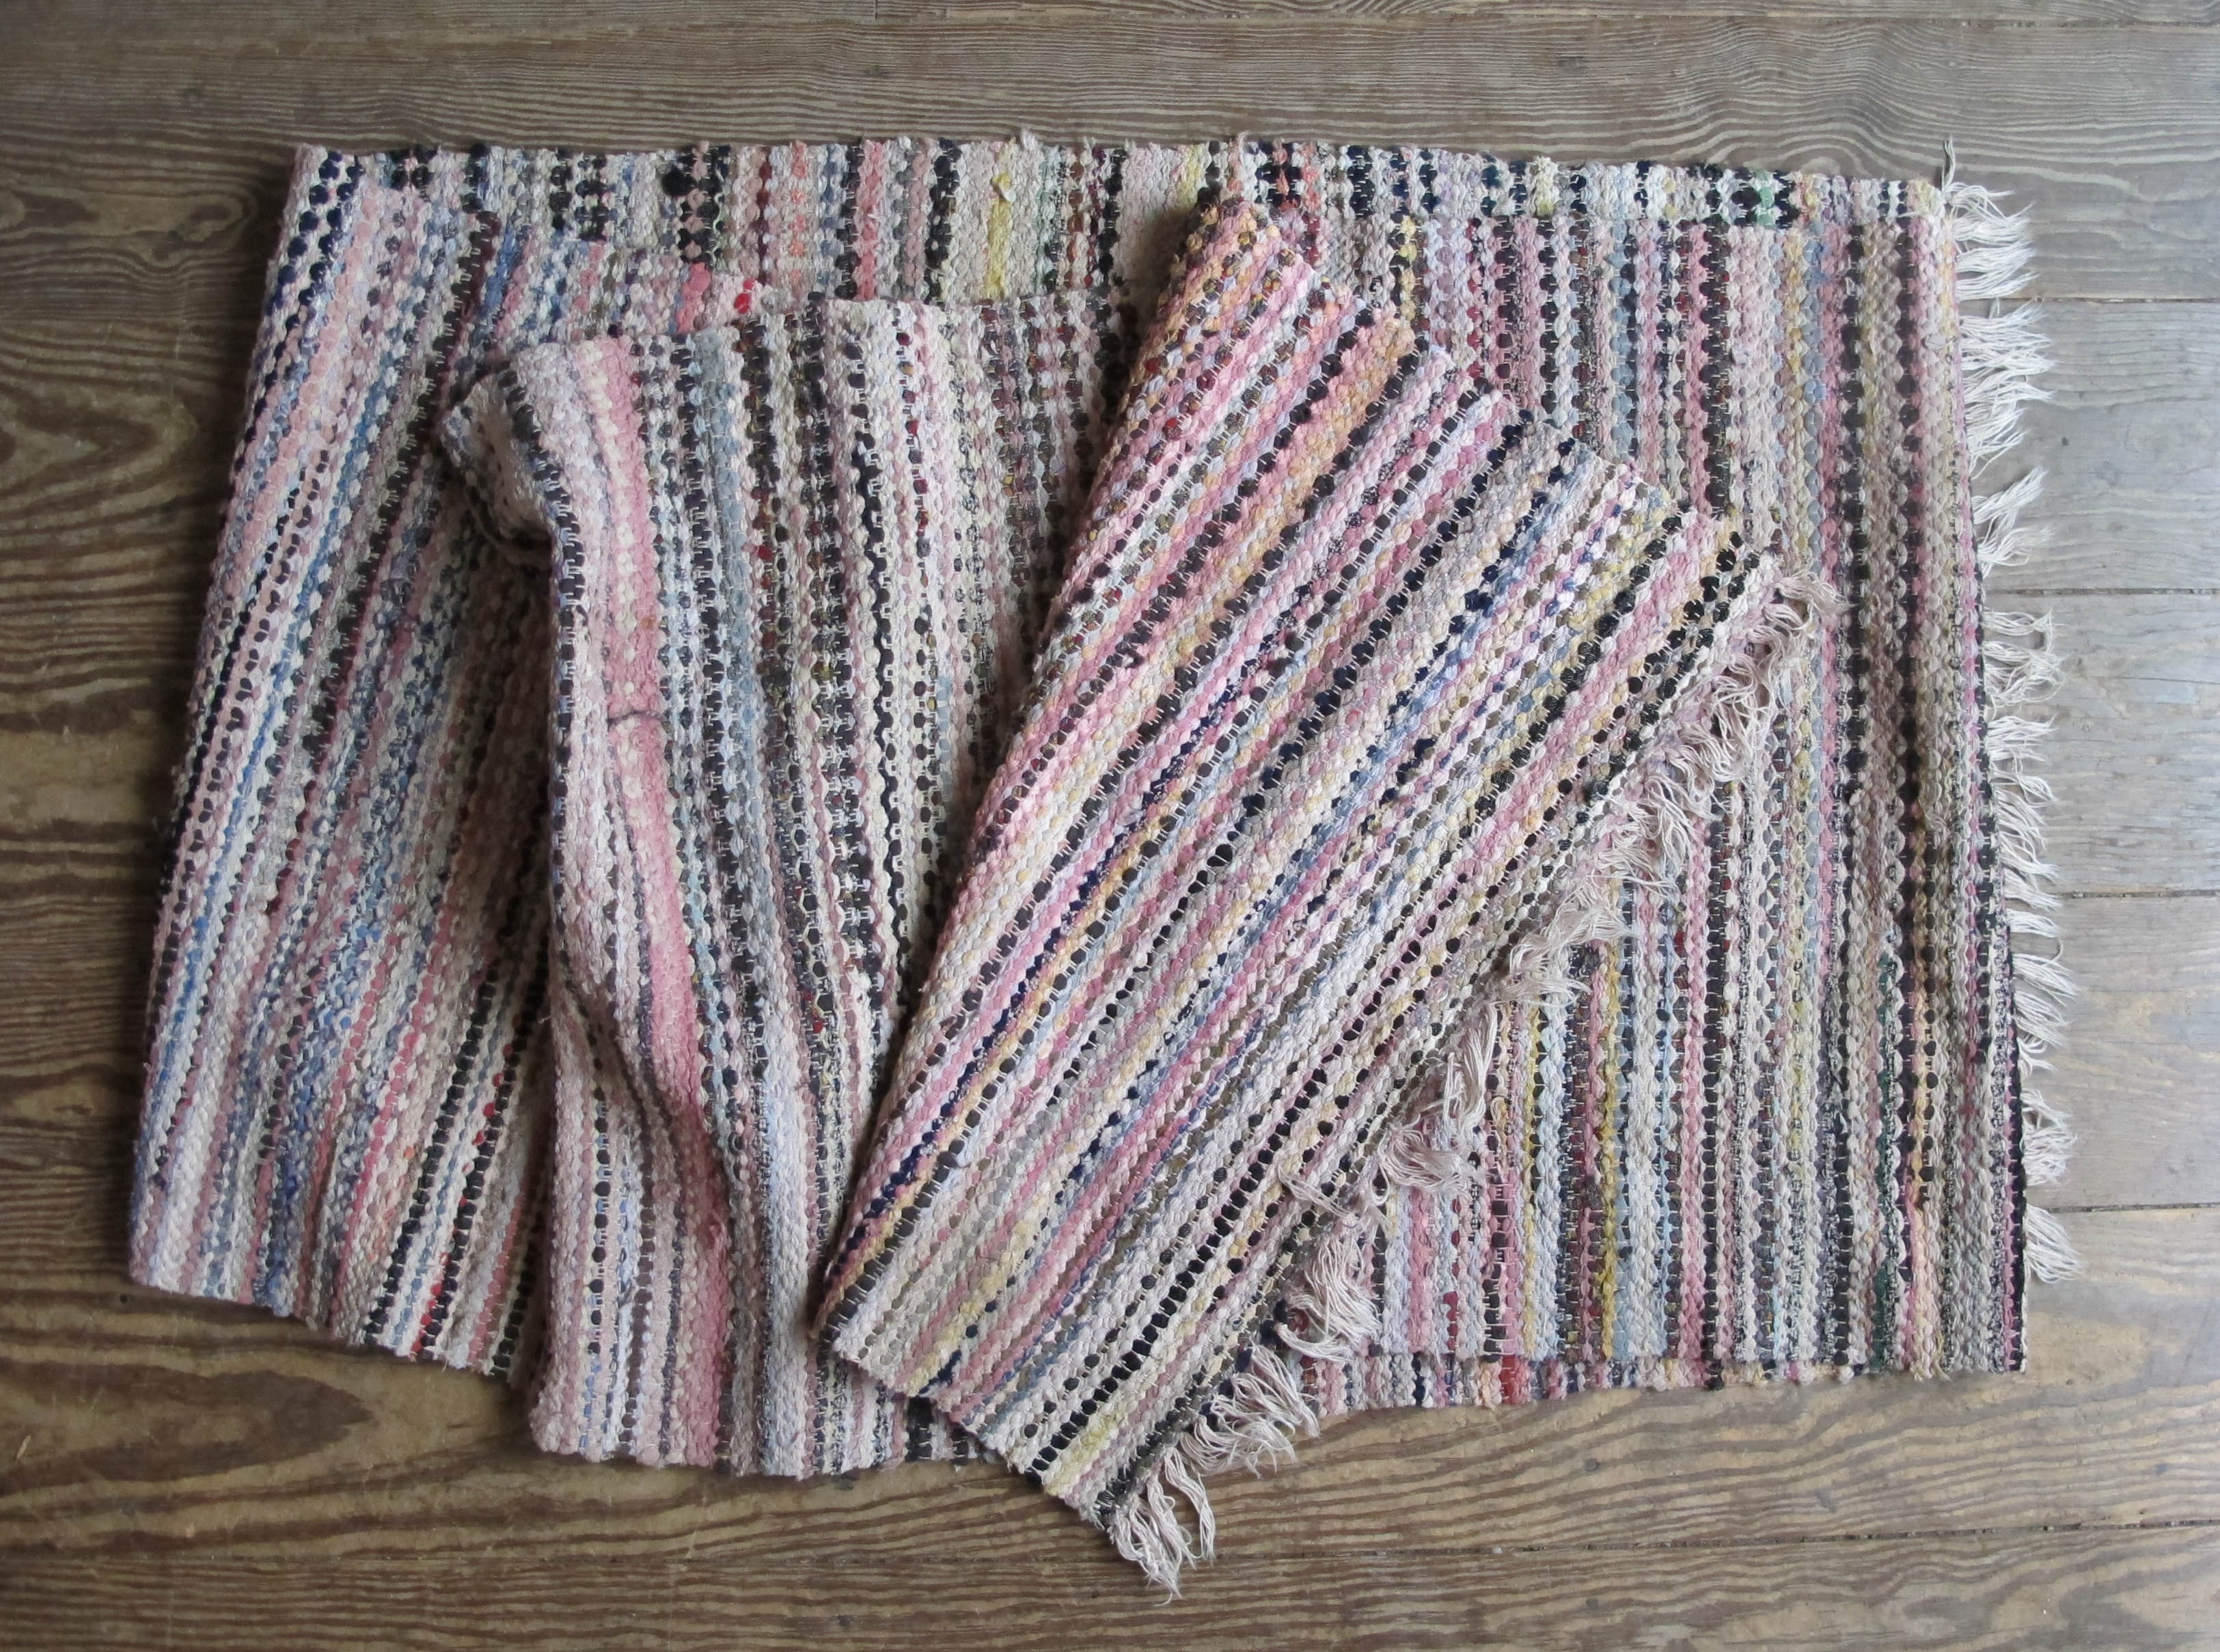 Vintage Swedish Rag Rugs Ragrugs